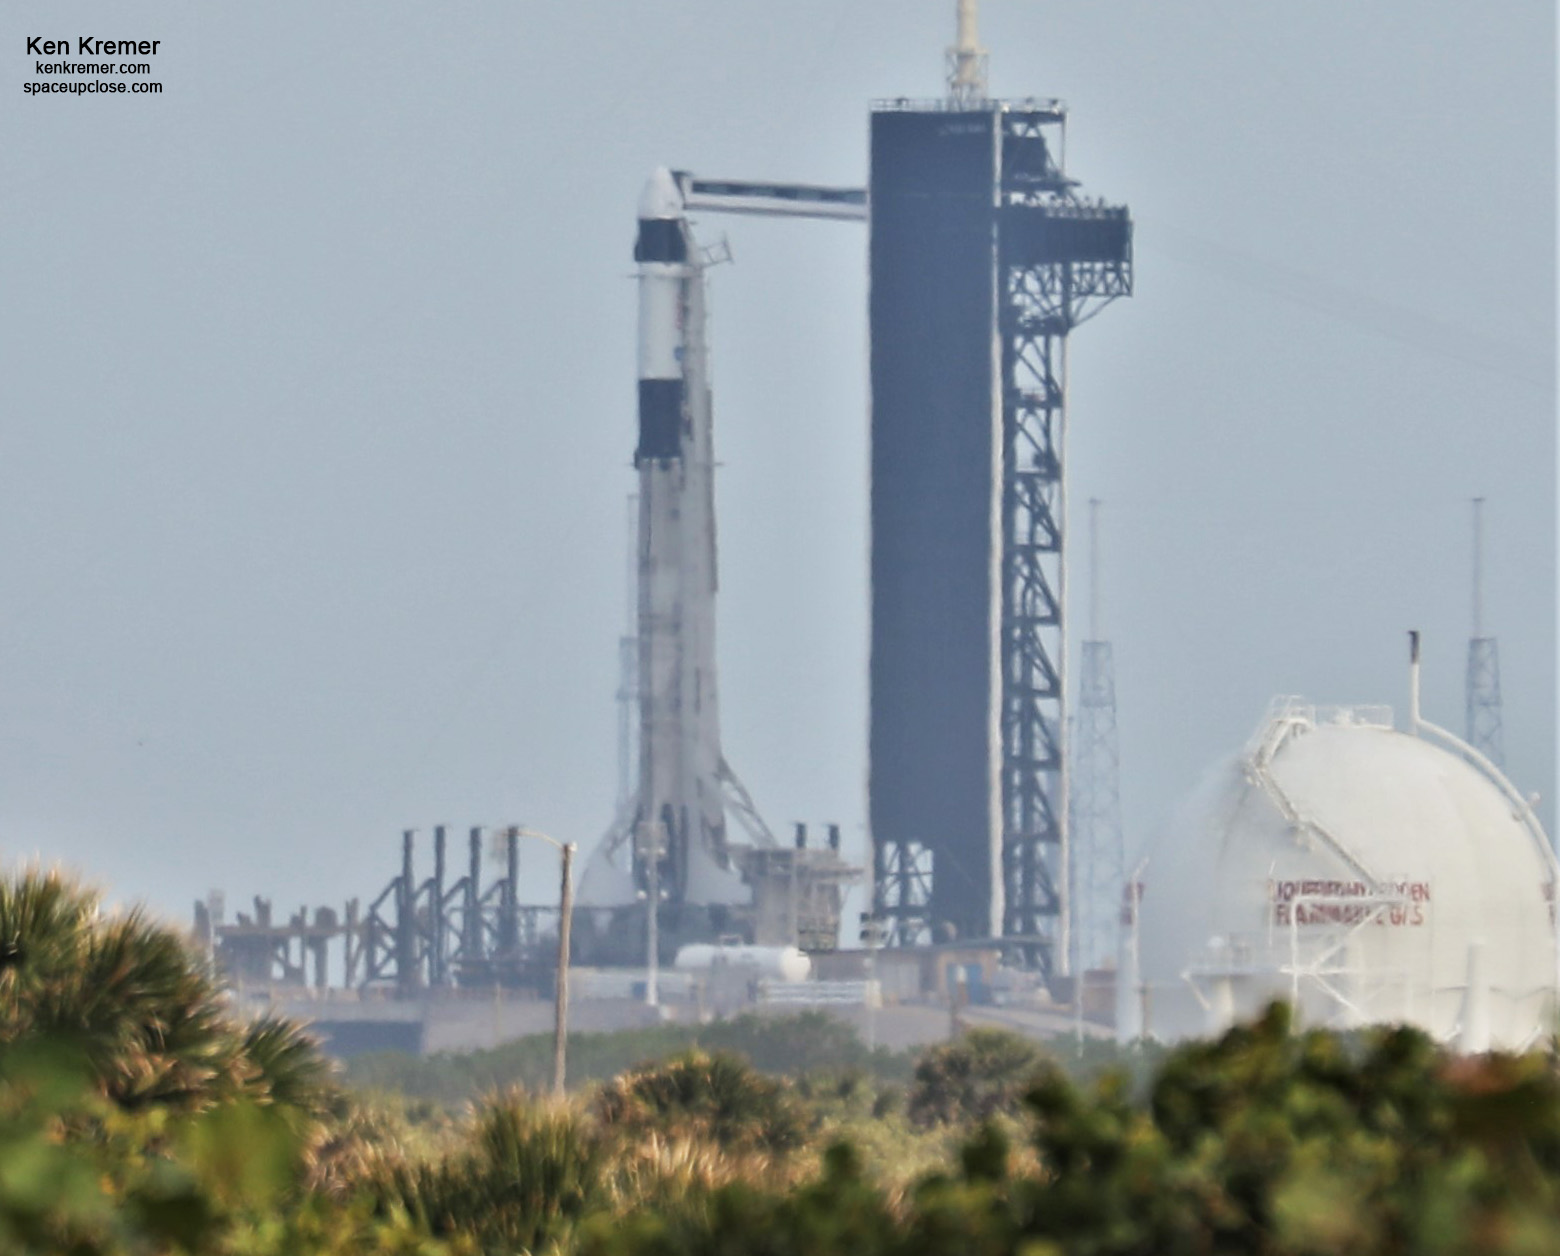 NASA, SpaceX GO for April 22 Launch 4 Astronauts to International Space Station: Photos